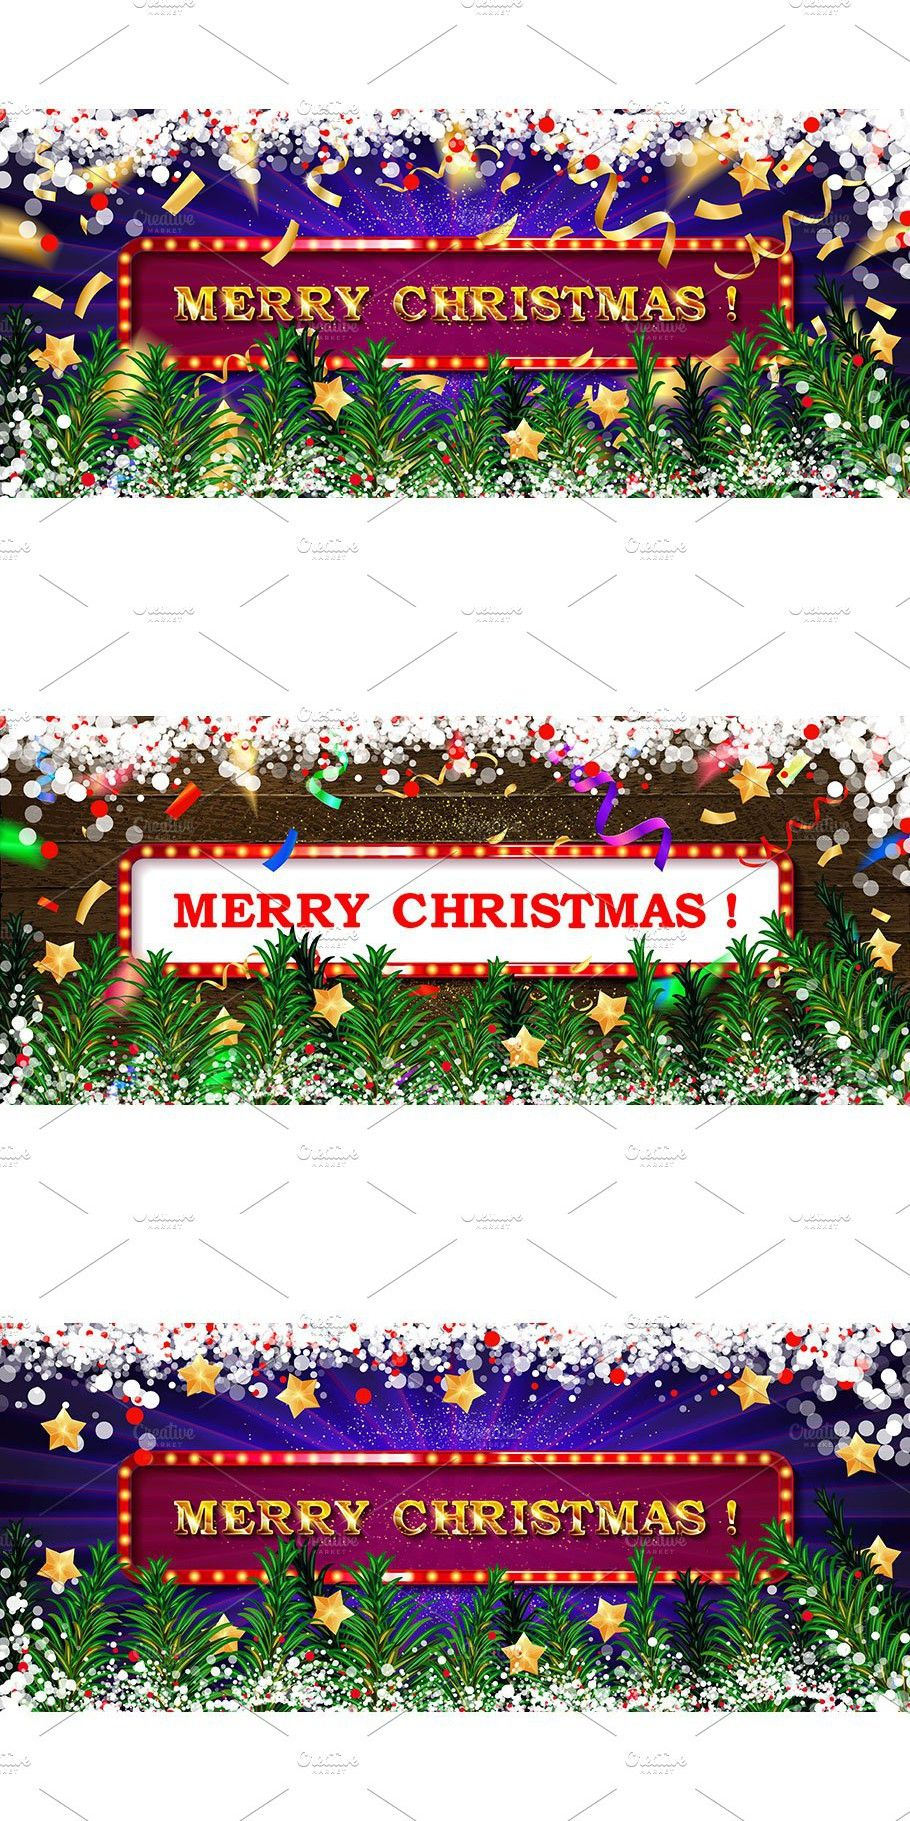 3 Merry Christmas Greeting Cards Merry Christmas Card Greetings Christmas Greeting Card Template Greeting Card Template